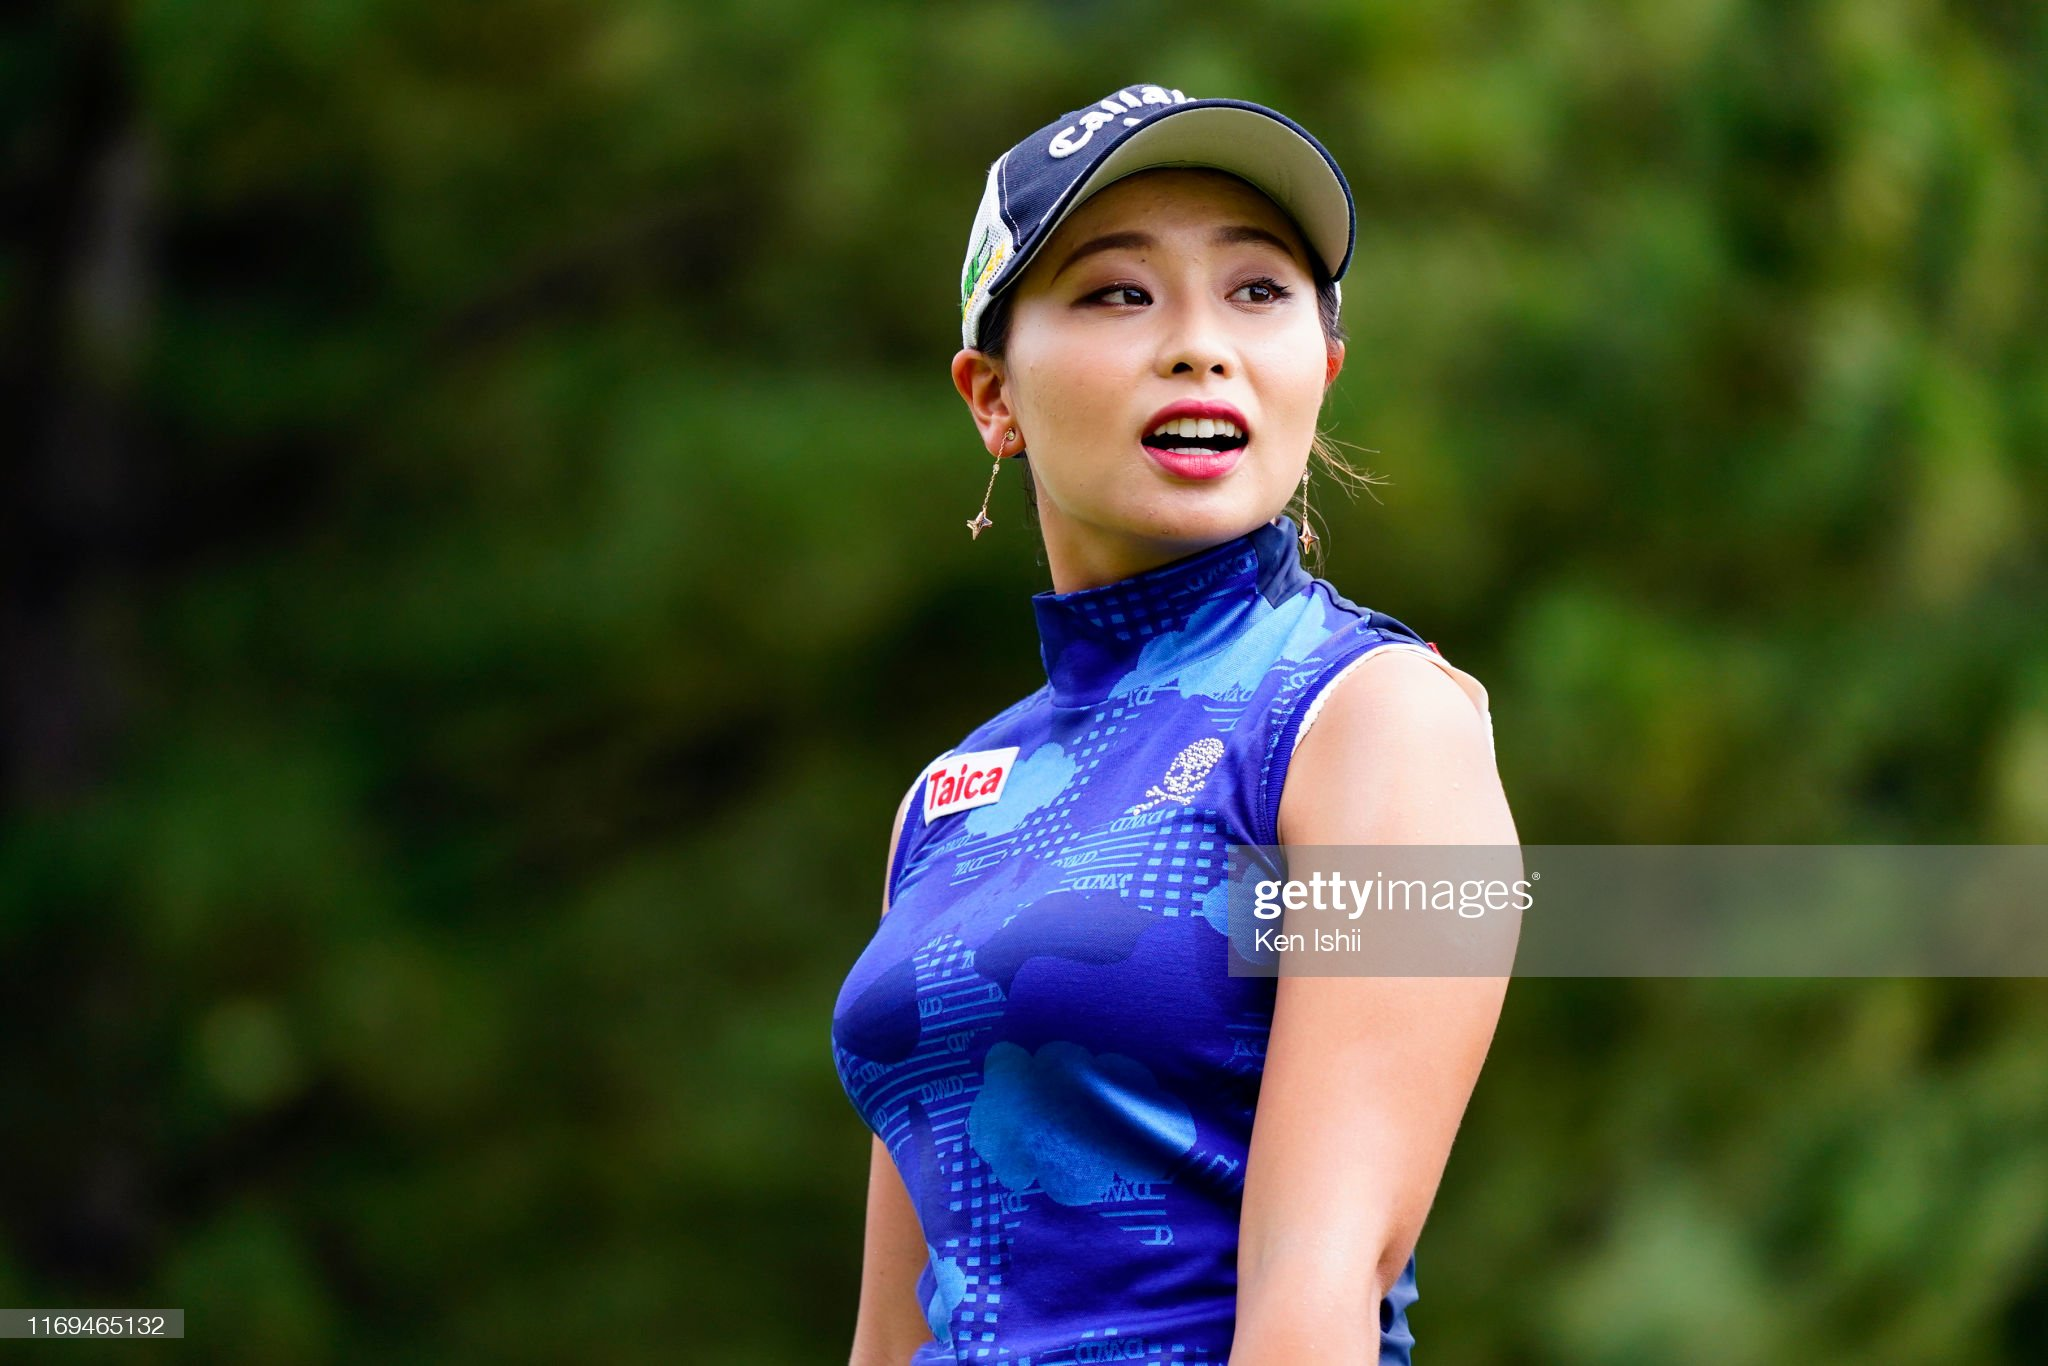 https://media.gettyimages.com/photos/miyuki-takeuchi-of-japan-reacts-after-her-tee-shot-on-the-1st-hole-picture-id1169465132?s=2048x2048